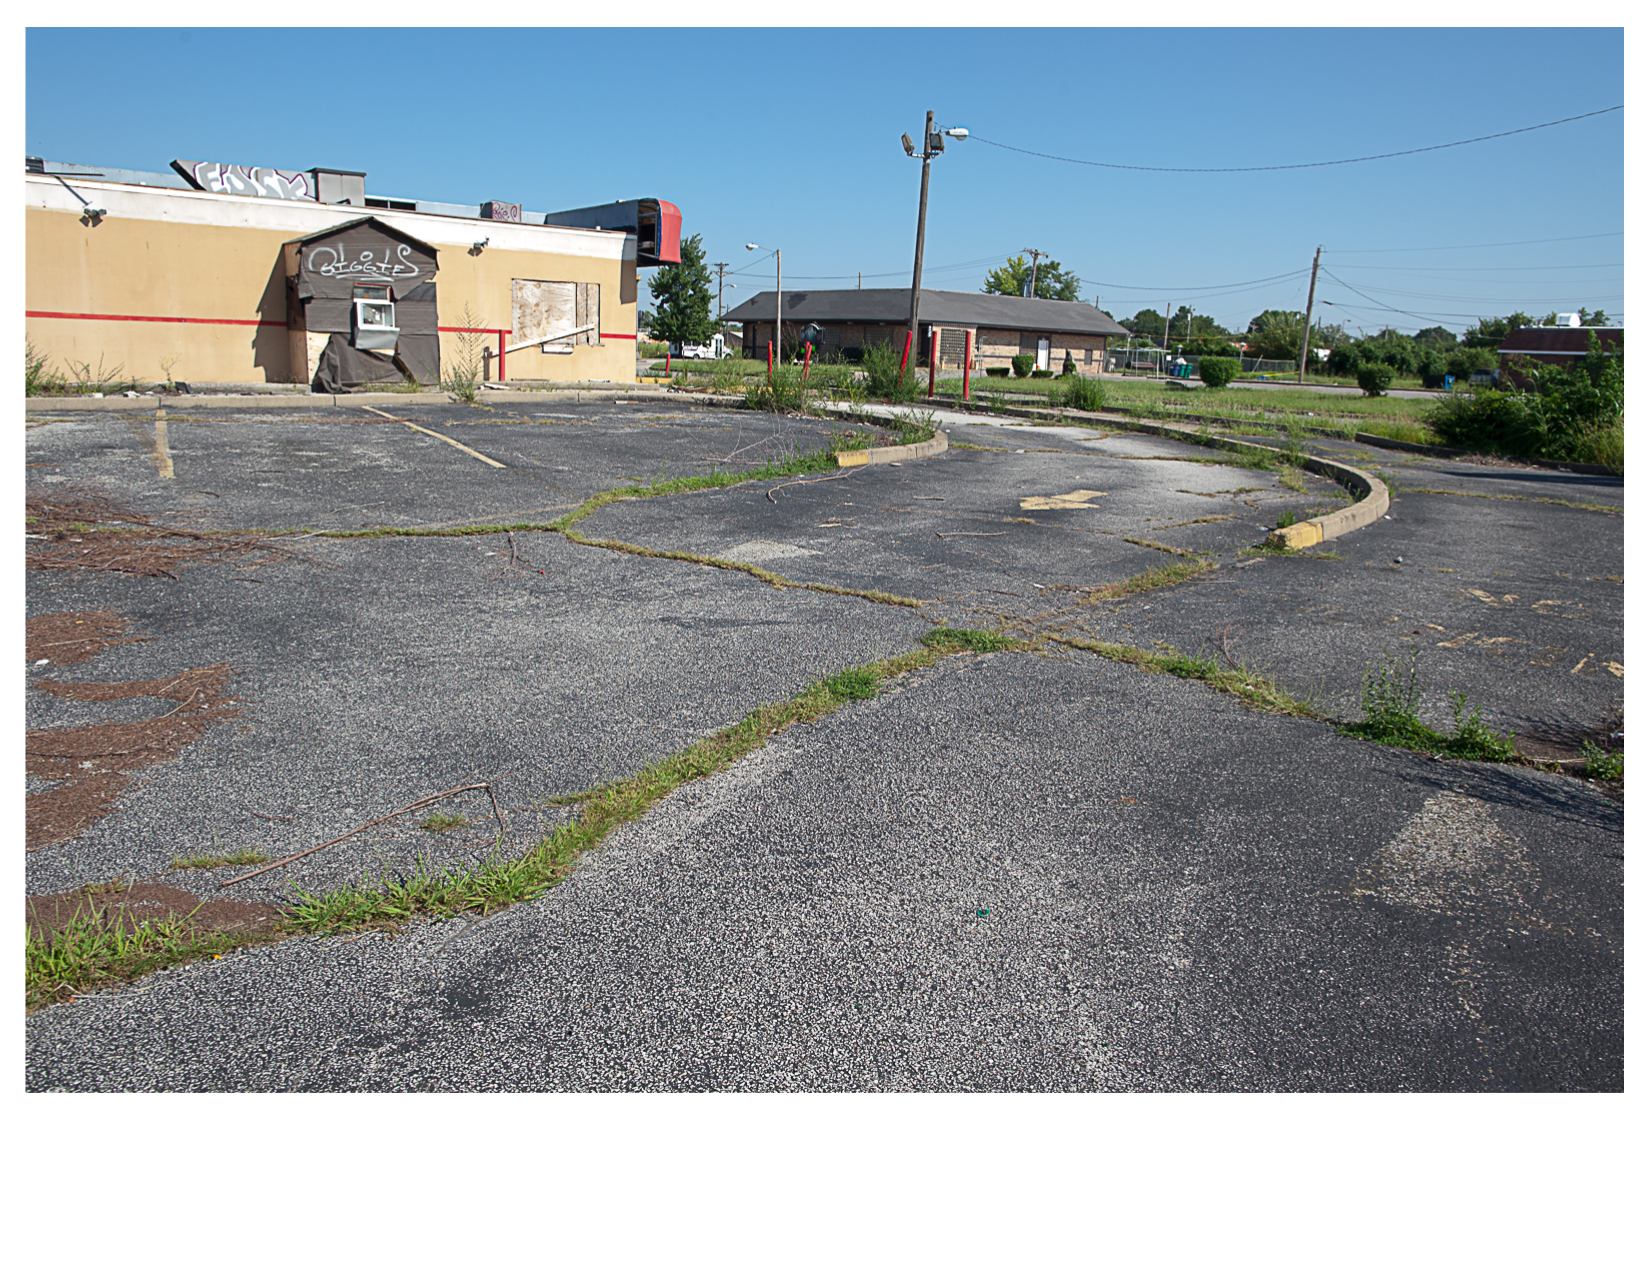 Abandoned Drive Thru, East St. Louis, IL